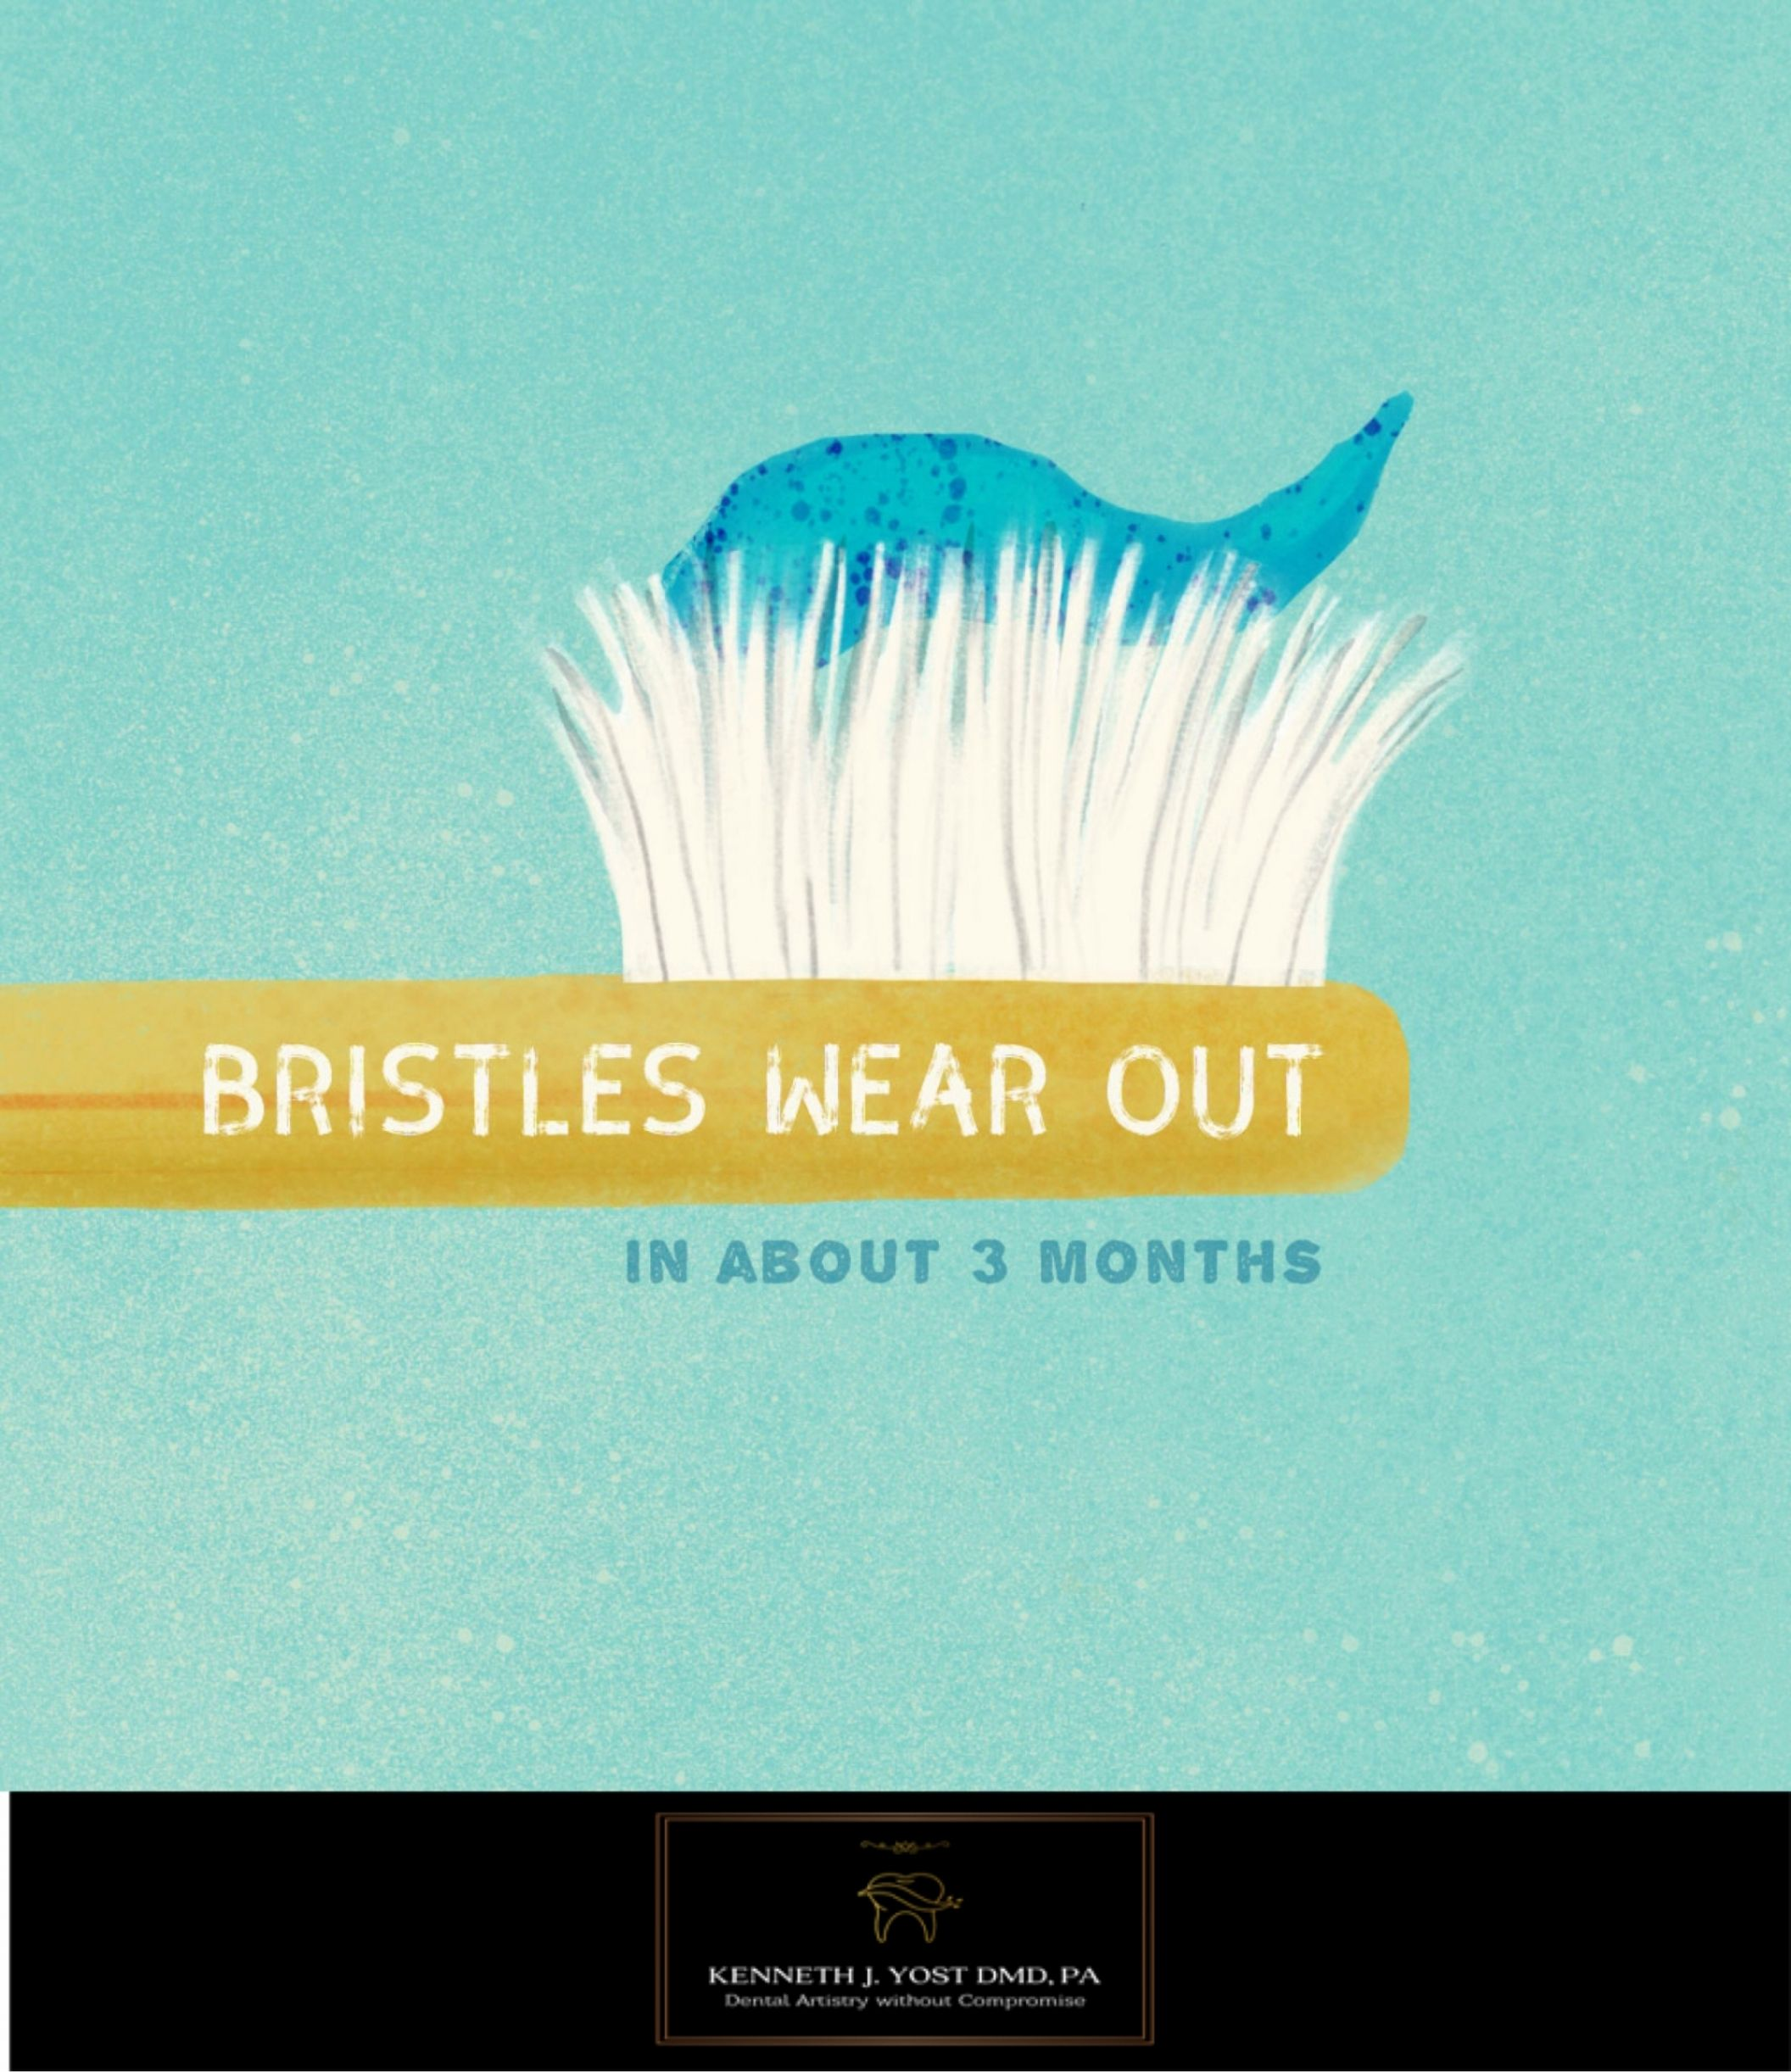 Did You Know That Toothbrush Bristles Wear Out After About Three